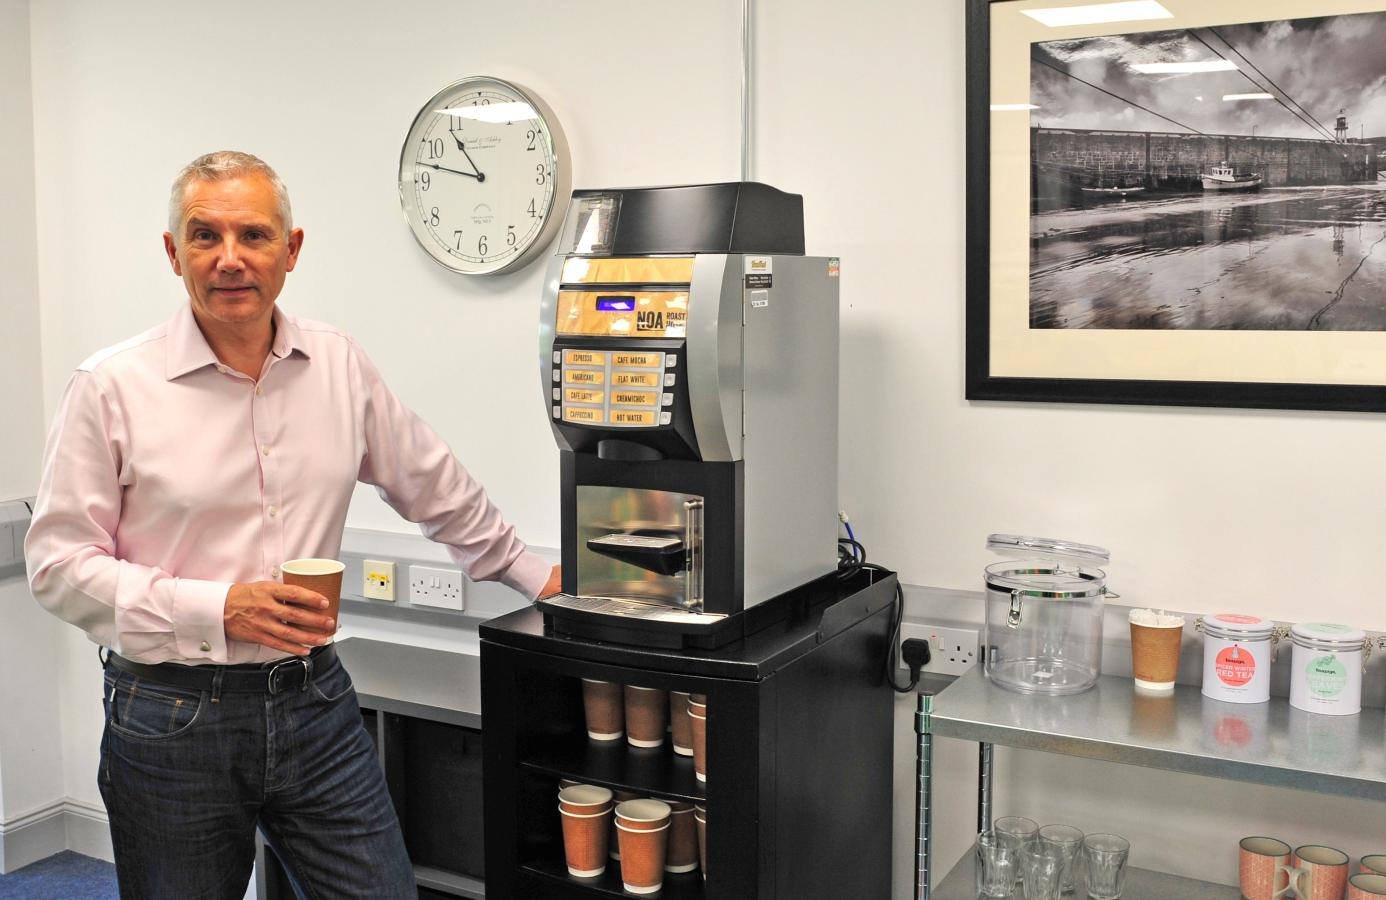 PHOTO: David Butterworth, Founder and CEO of Manninvest, at the company's offices at Skanco Court, Cooil Road, Douglas.